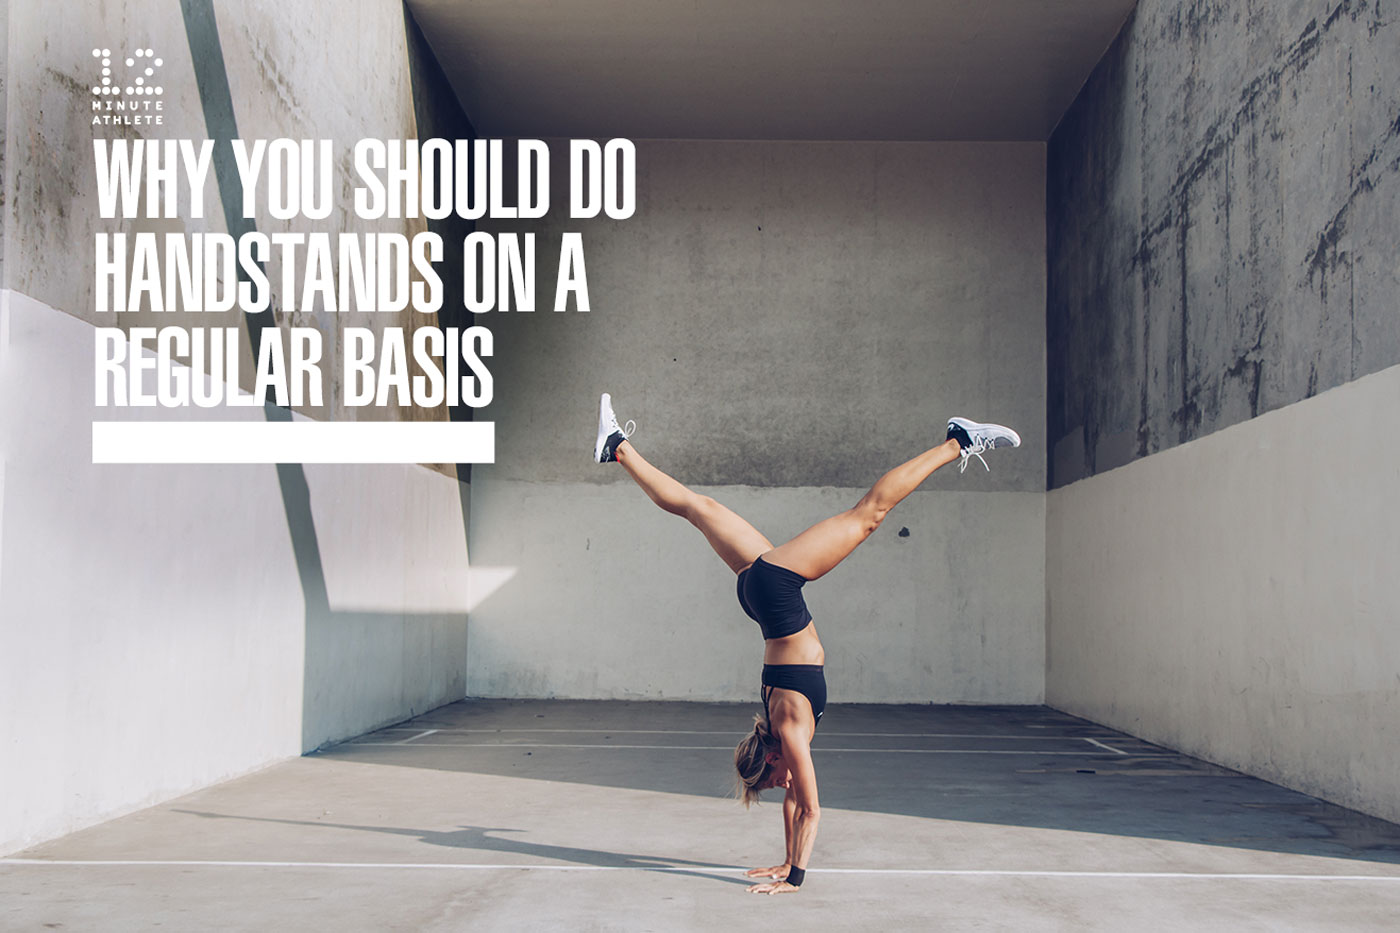 why you should do handstands on a regular basis